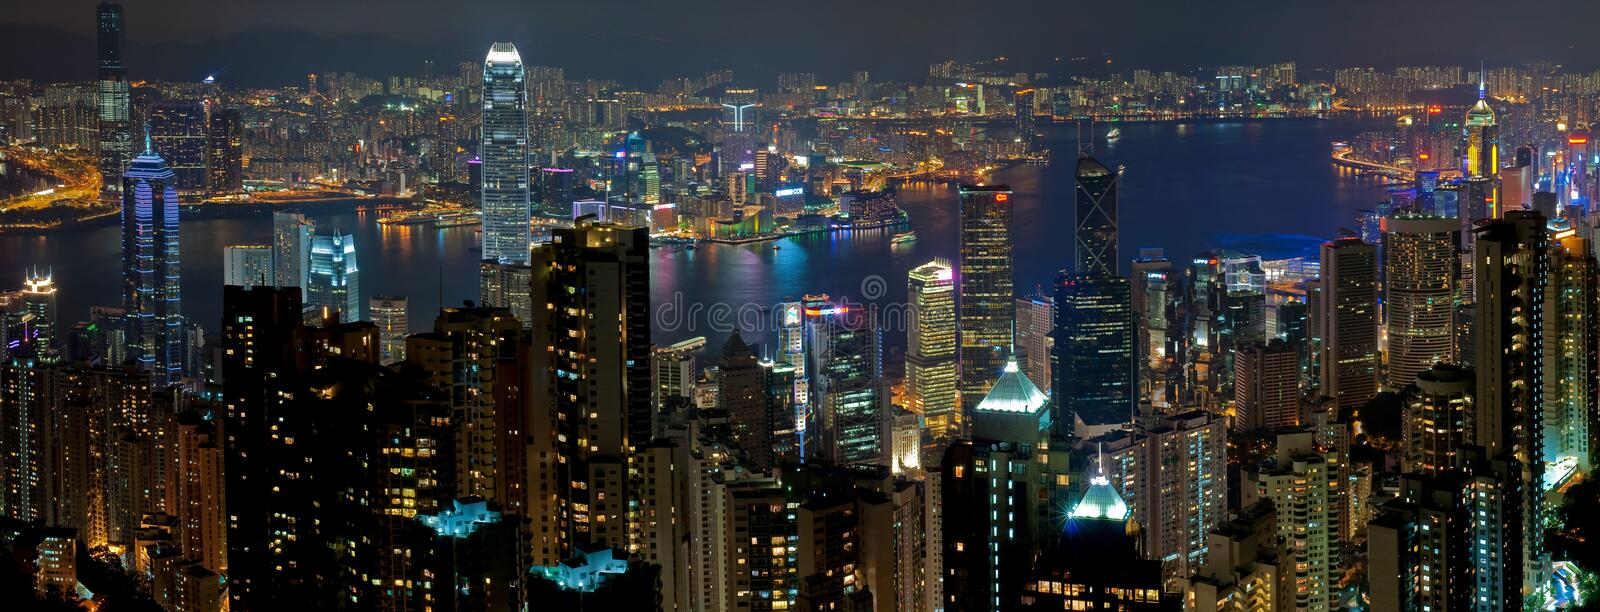 HongKong Night. Panoramic views of Victoria Harbour at night,including all the famous buildings.Taken on Victoria Peak.Hongkong,Asia stock photo